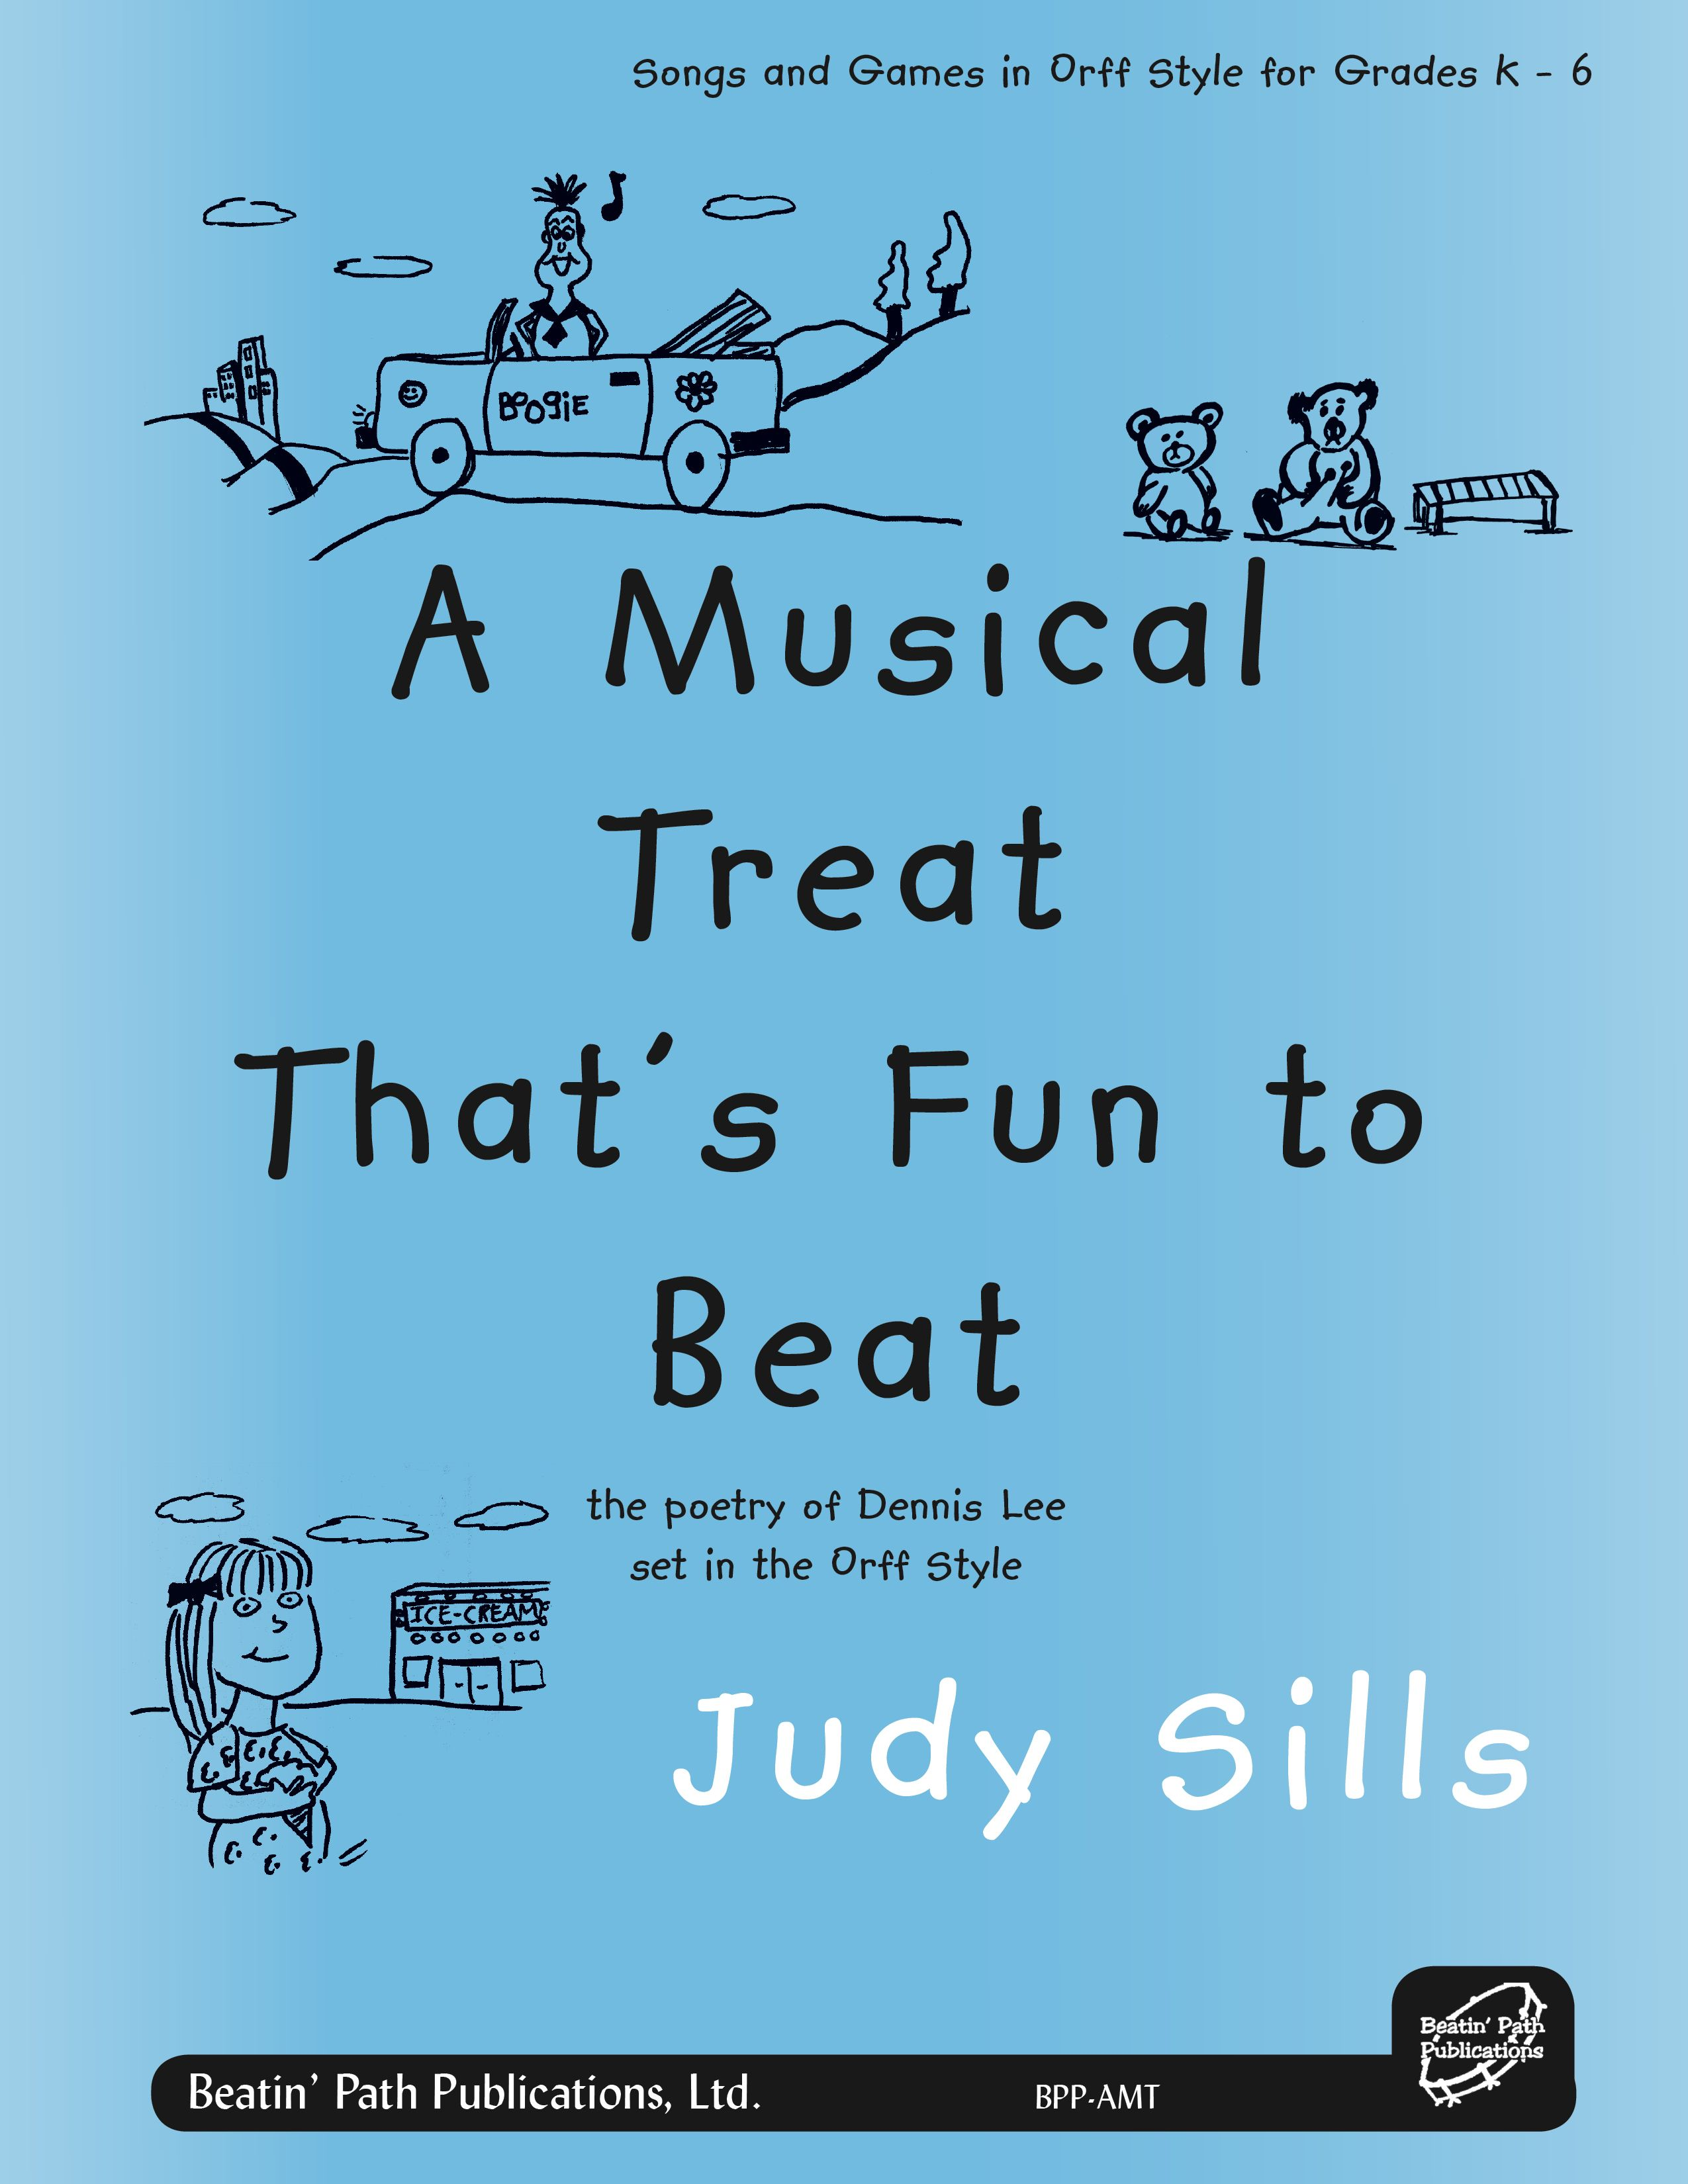 Orff Activities and Lesson plans from one of the best Orff teachers